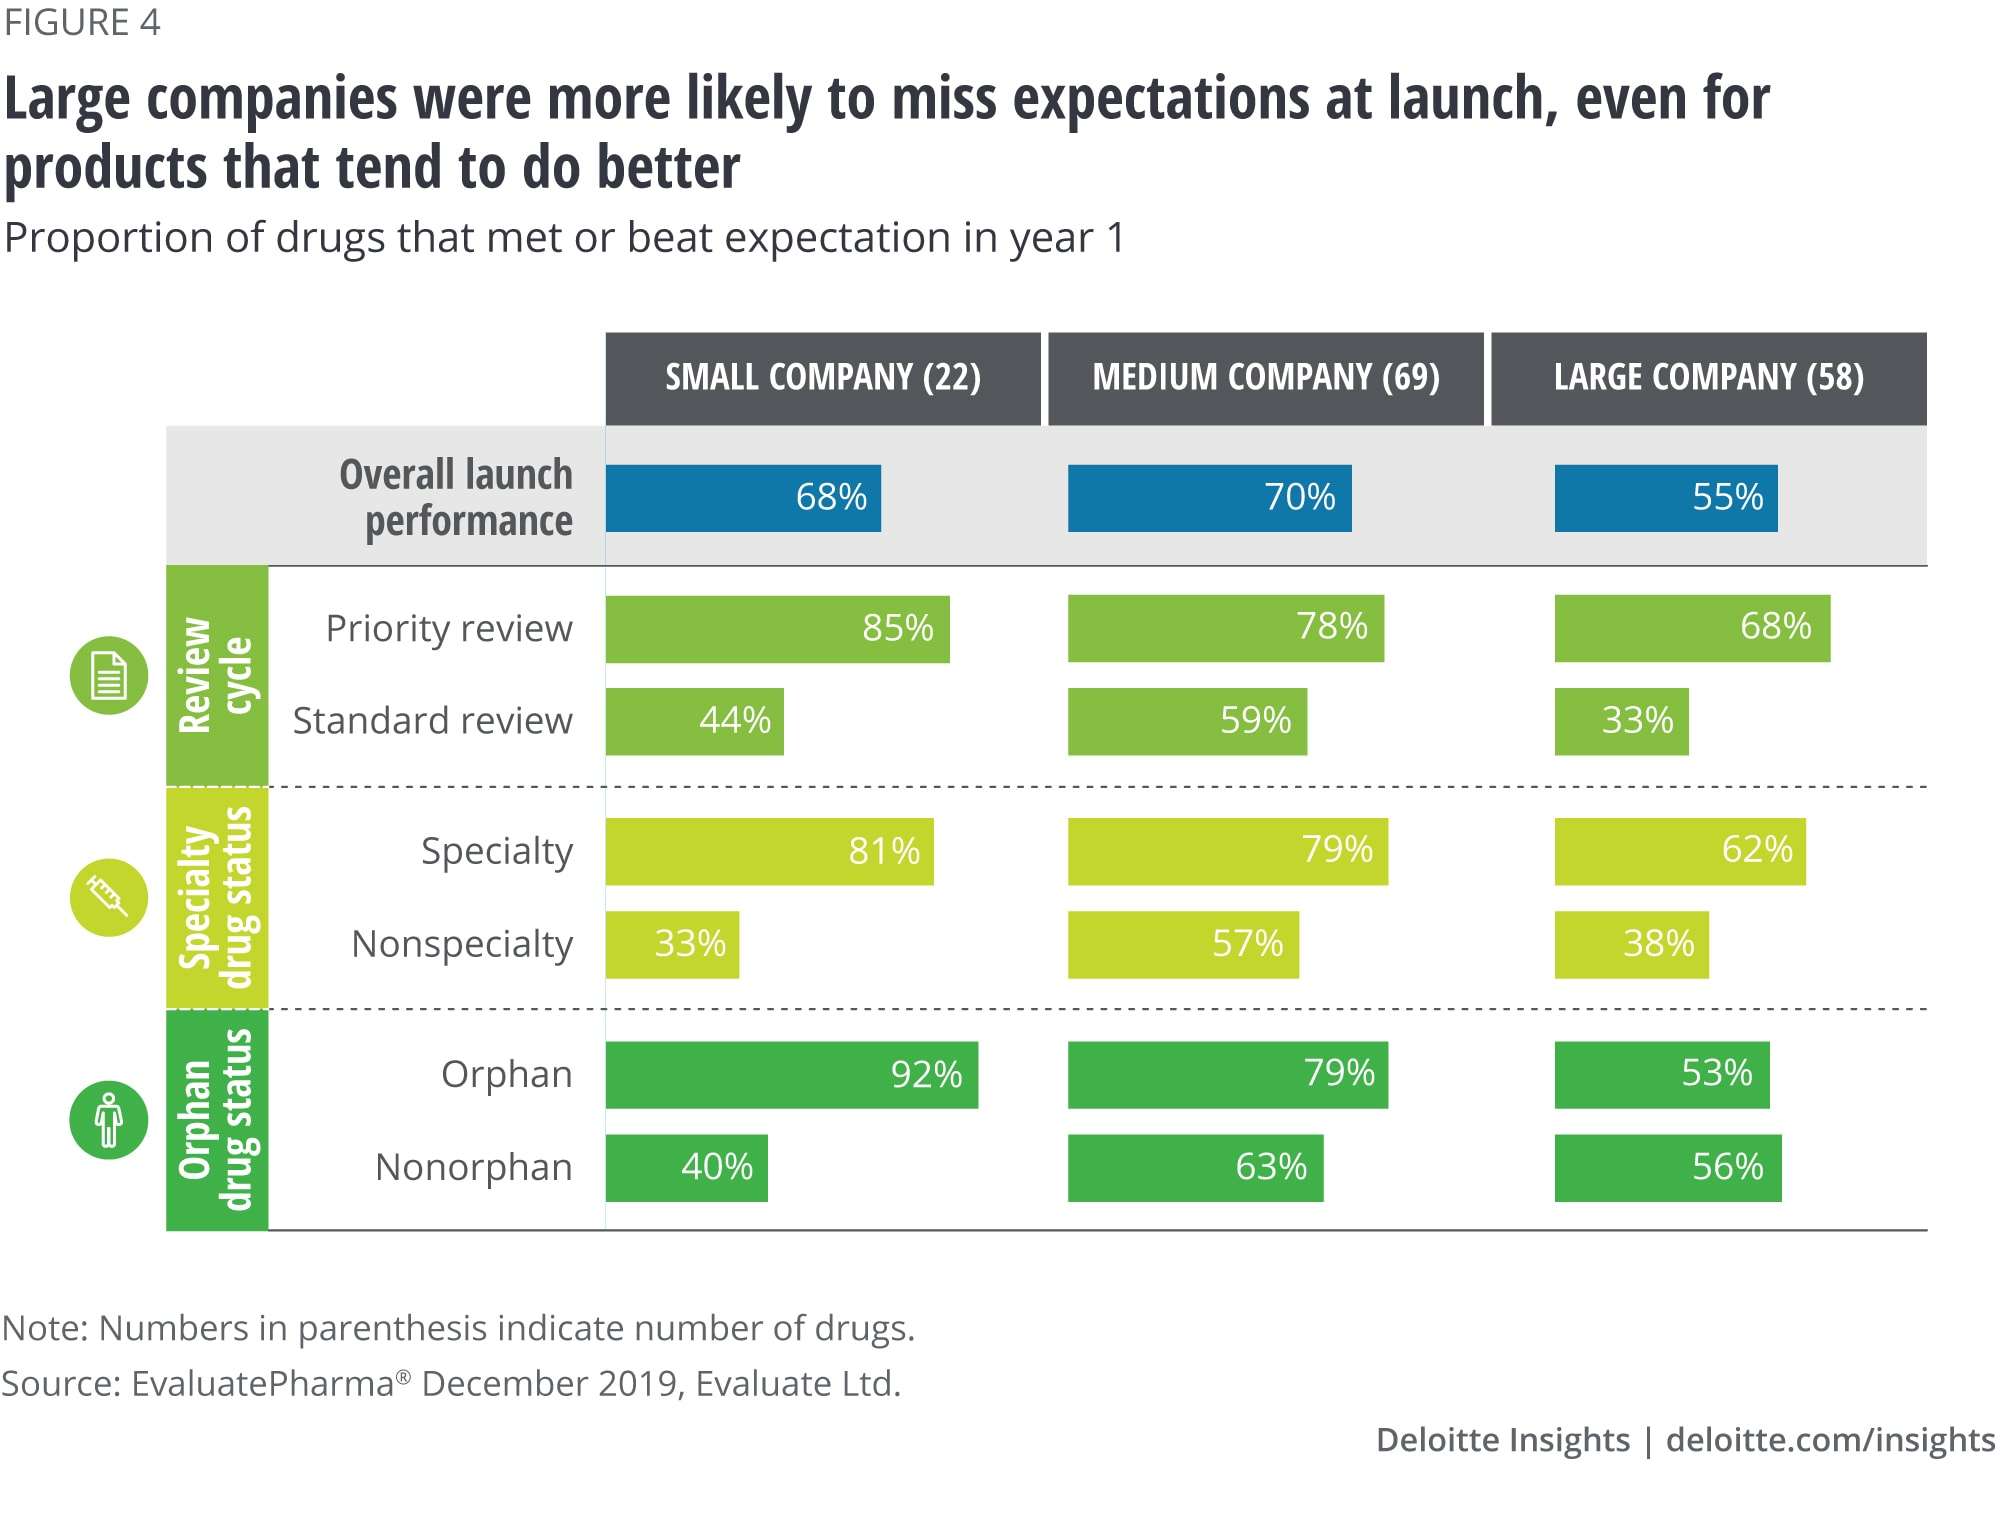 Large companies were more likely to miss expectations at launch, even for products that tend to do better